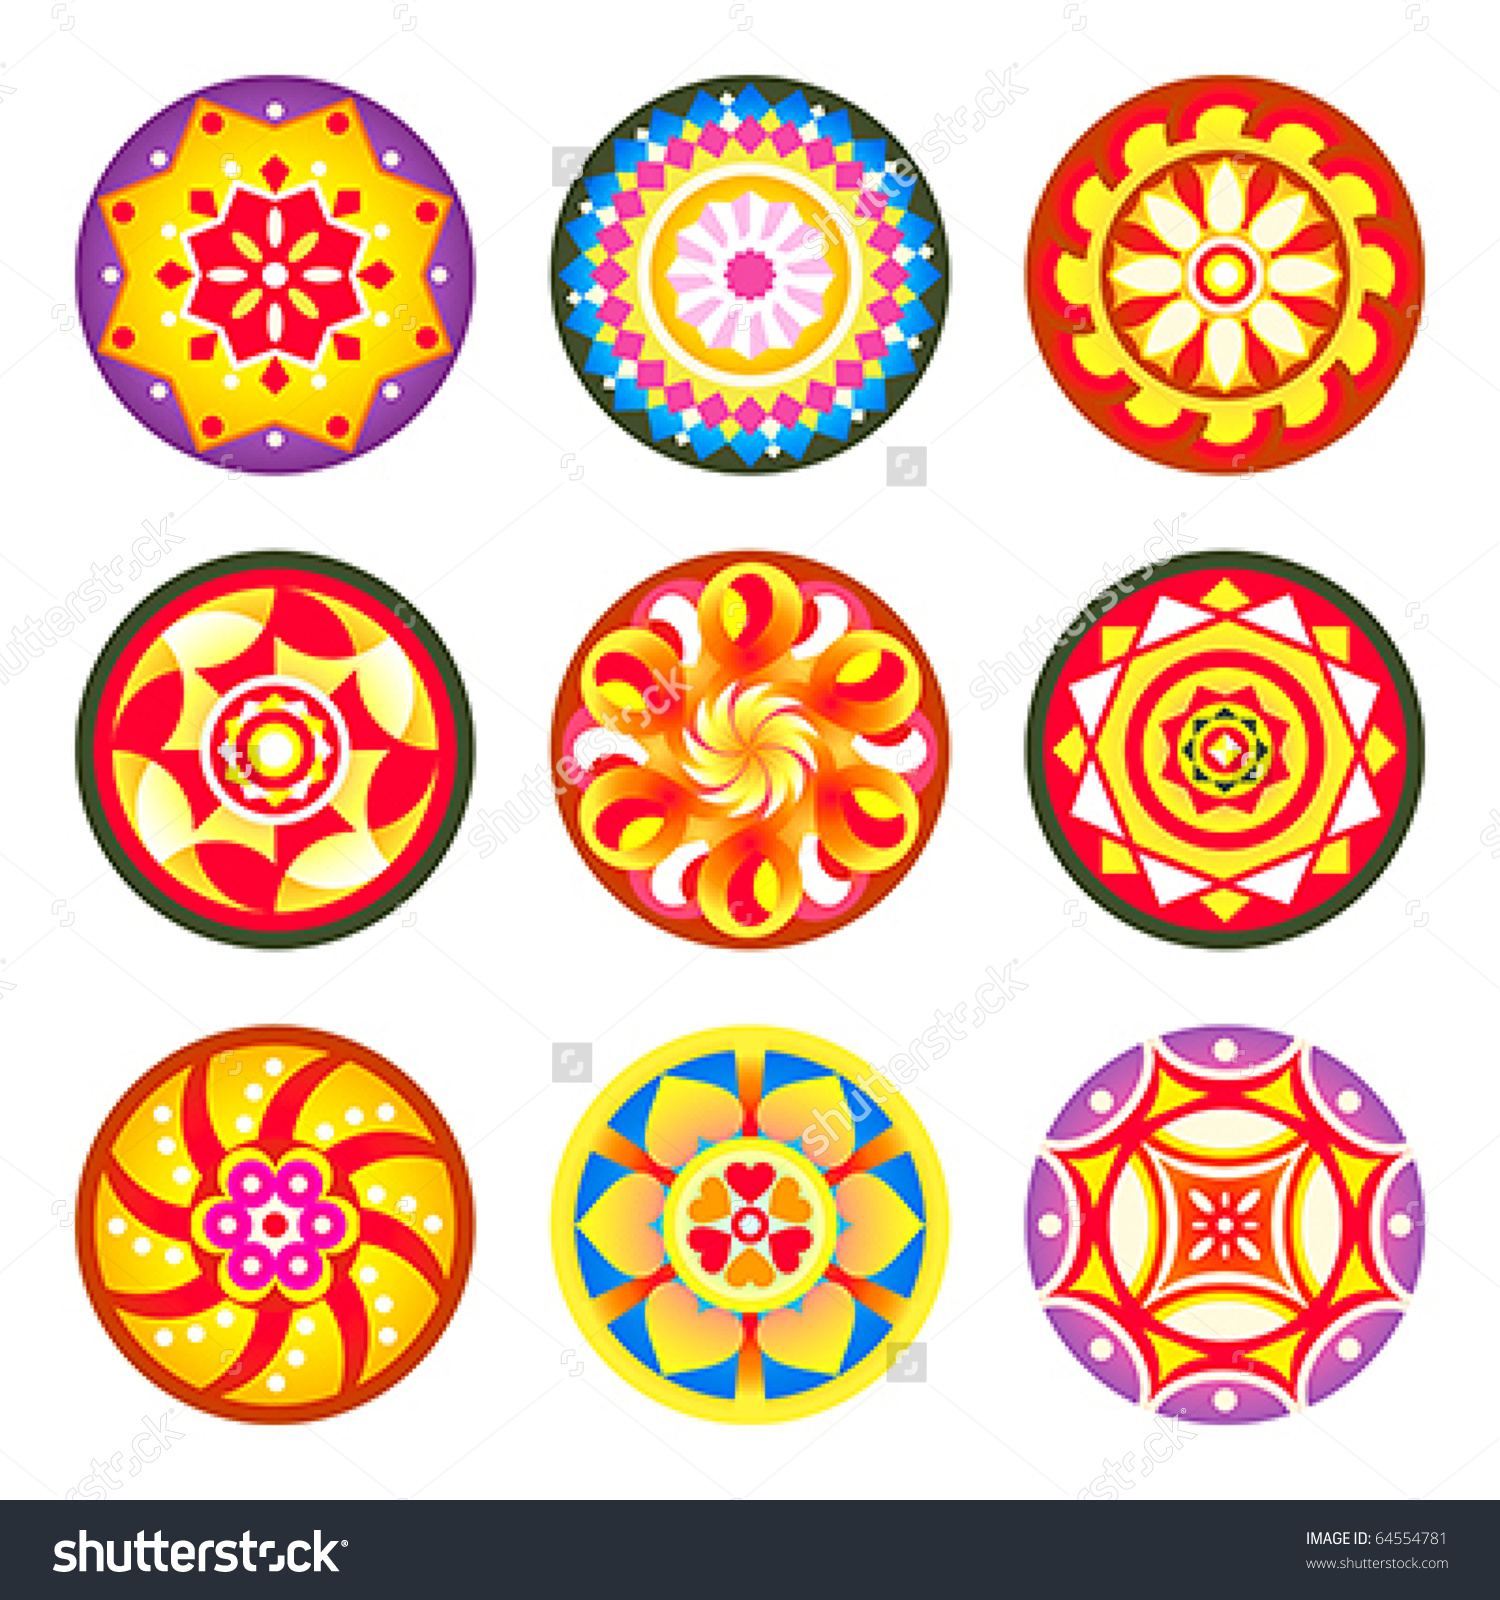 Indian Flower Carpet Patterns Pookalams Onam Stock Vector 64554781.